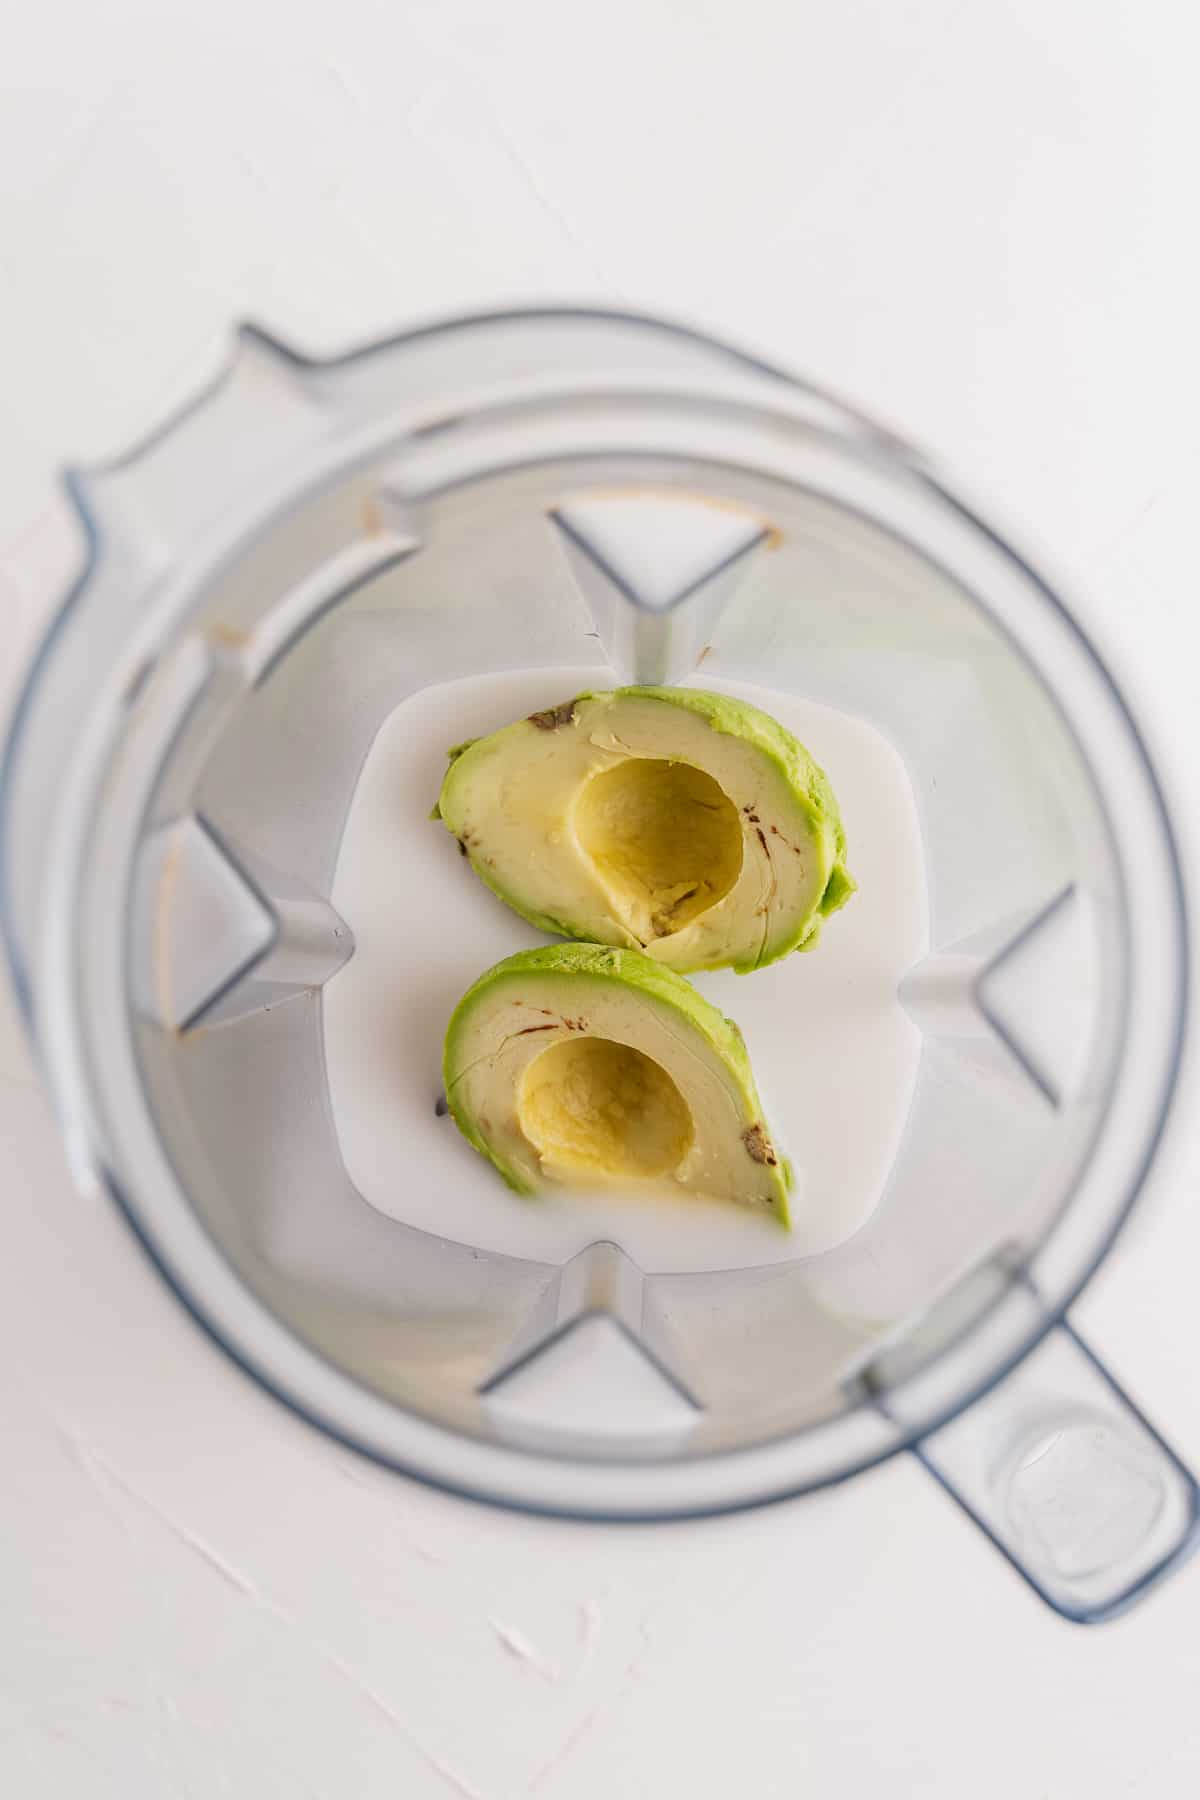 Coconut Milk and Avocado in a Blender